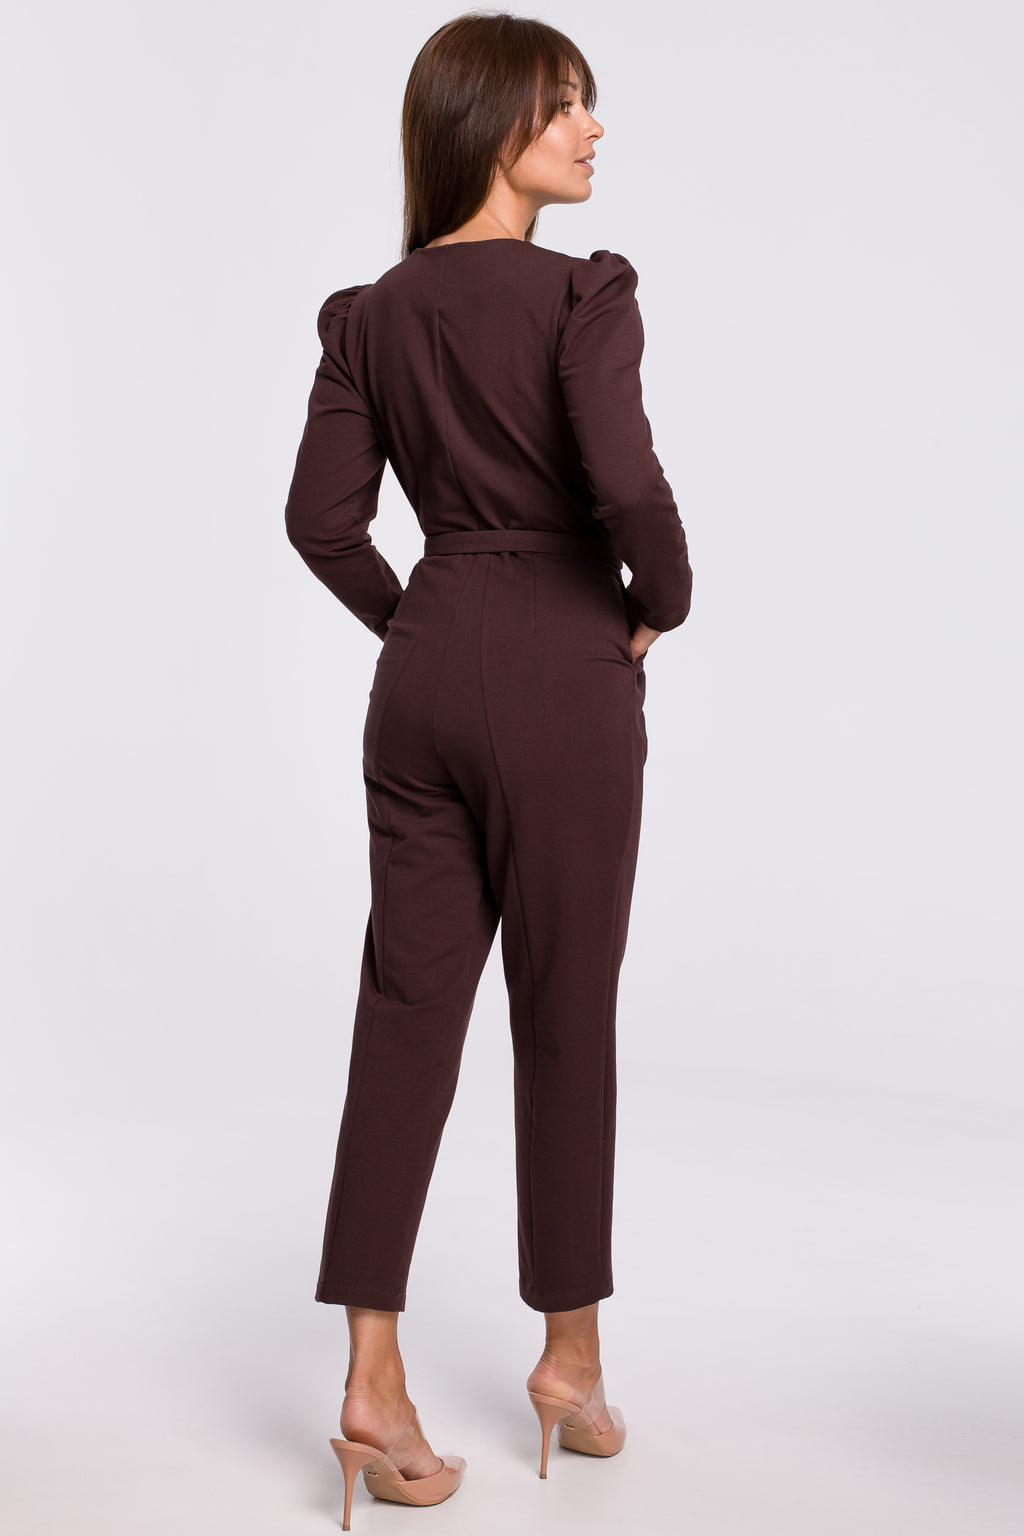 Brown Cotton Jumpsuit With A Buckle Belt - So Chic Boutique